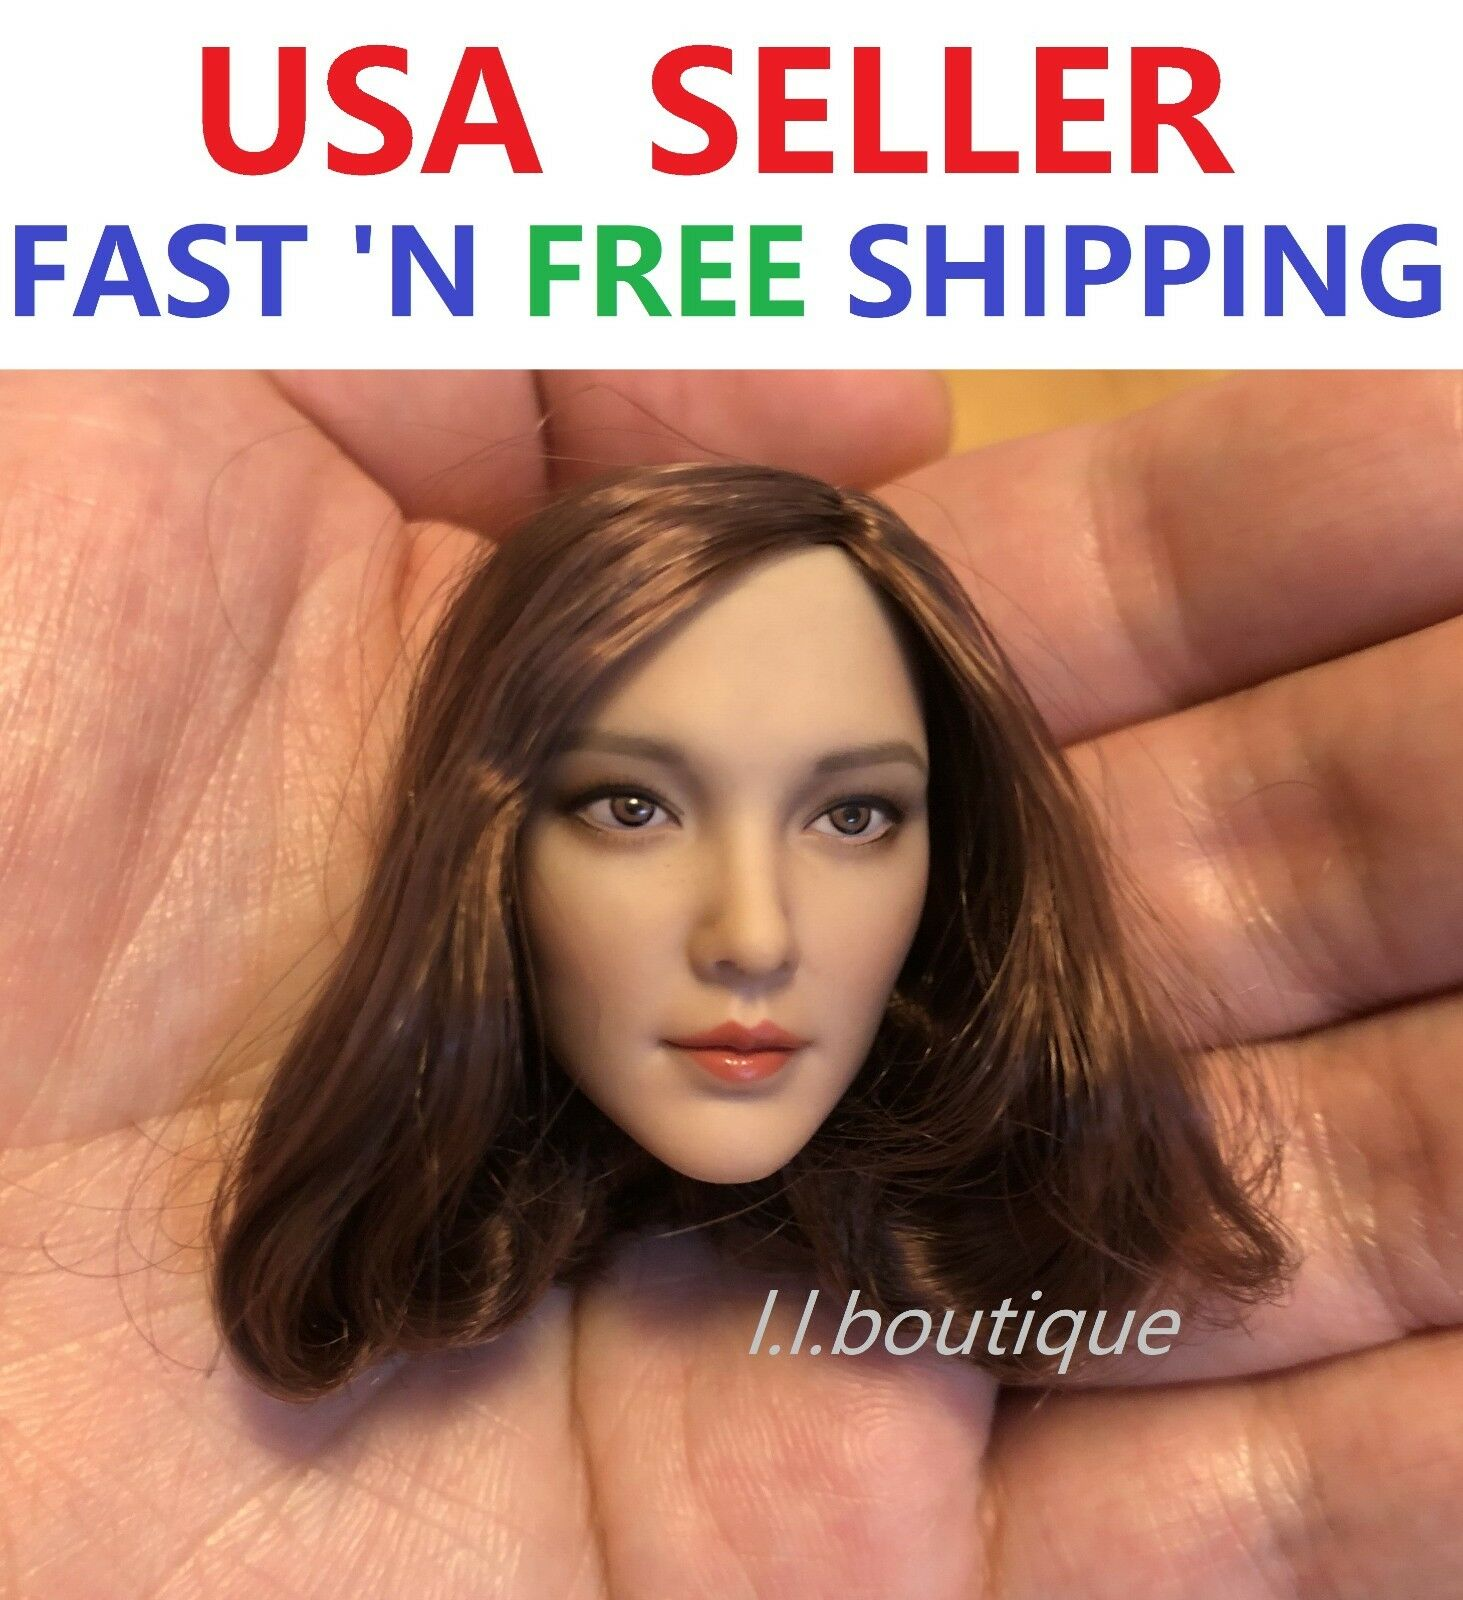 CAT TOYS 1 6 Female Head sculpt B for 12'' Female Figure Doll Phicen